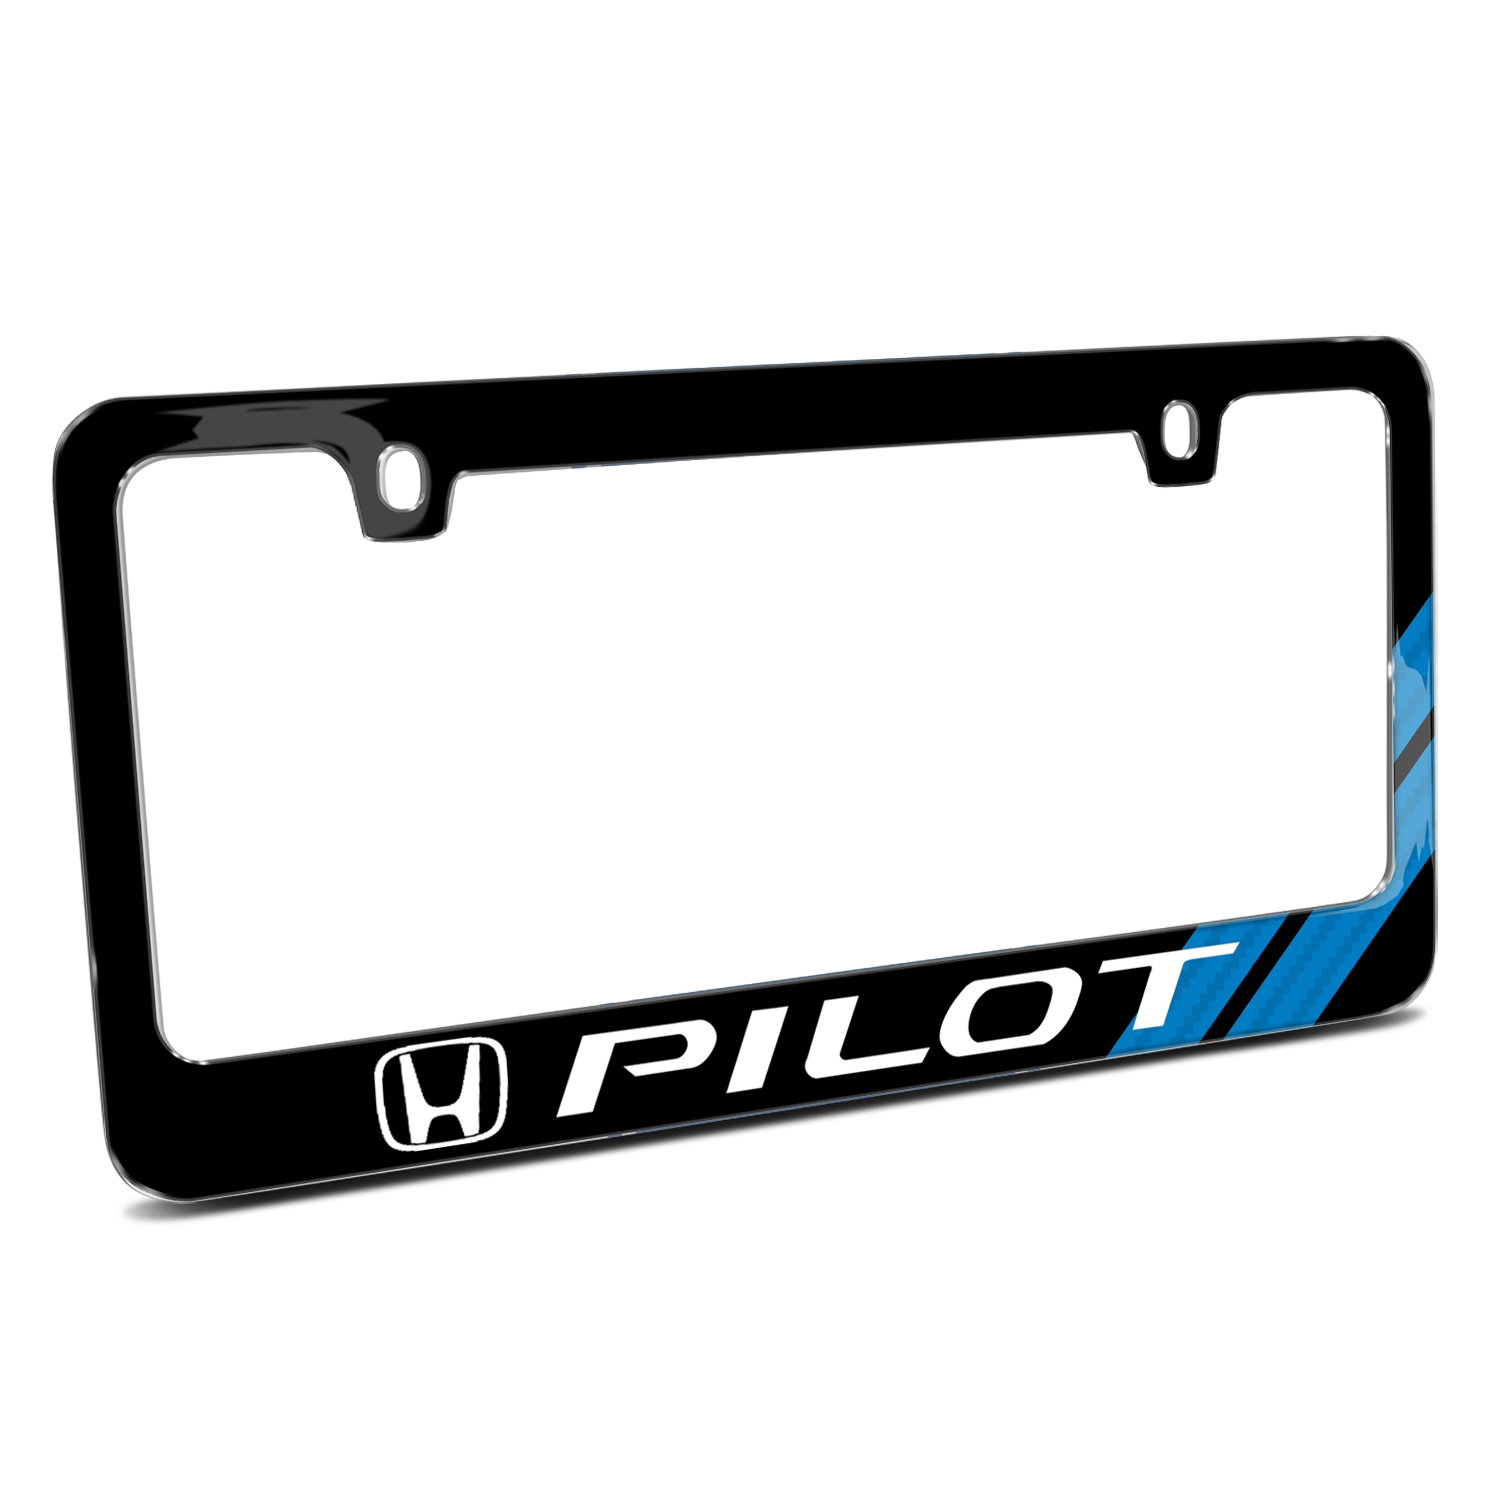 Honda Pilot Blue Carbon Fiber Texture Stripe Black Metal License Plate Frame